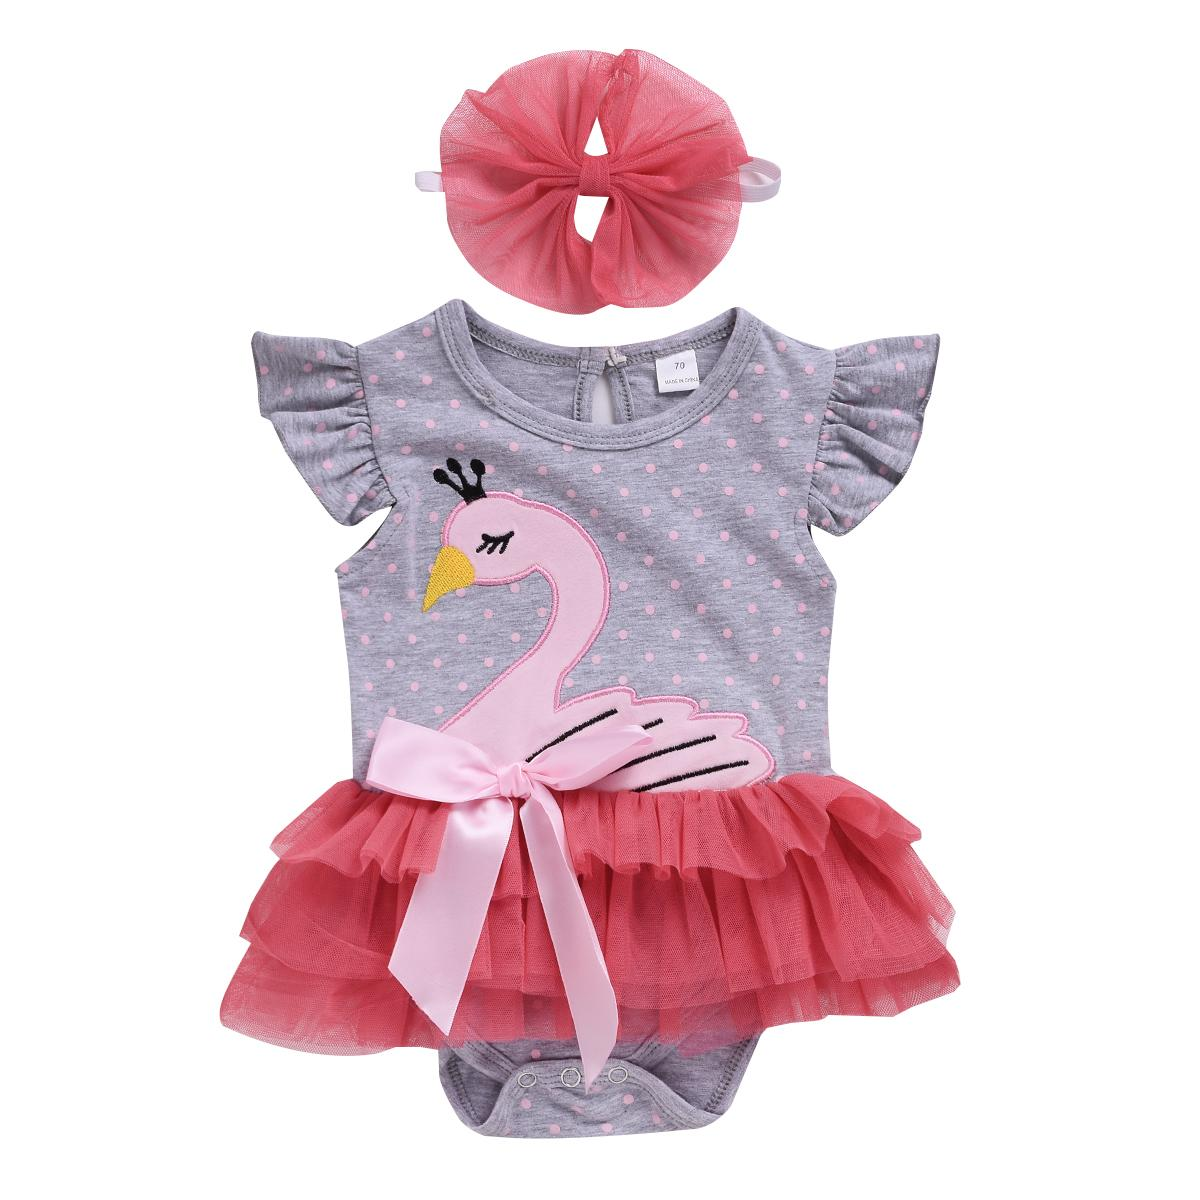 ab30431e7998 2019 Infant Baby Girls Swan Dot Rompers With Bow Headband Lace Tulle  Jumpsuits Bodysuit Onesies Fashion Boutique Kids Clothes 0 24M B11 From  Start baby